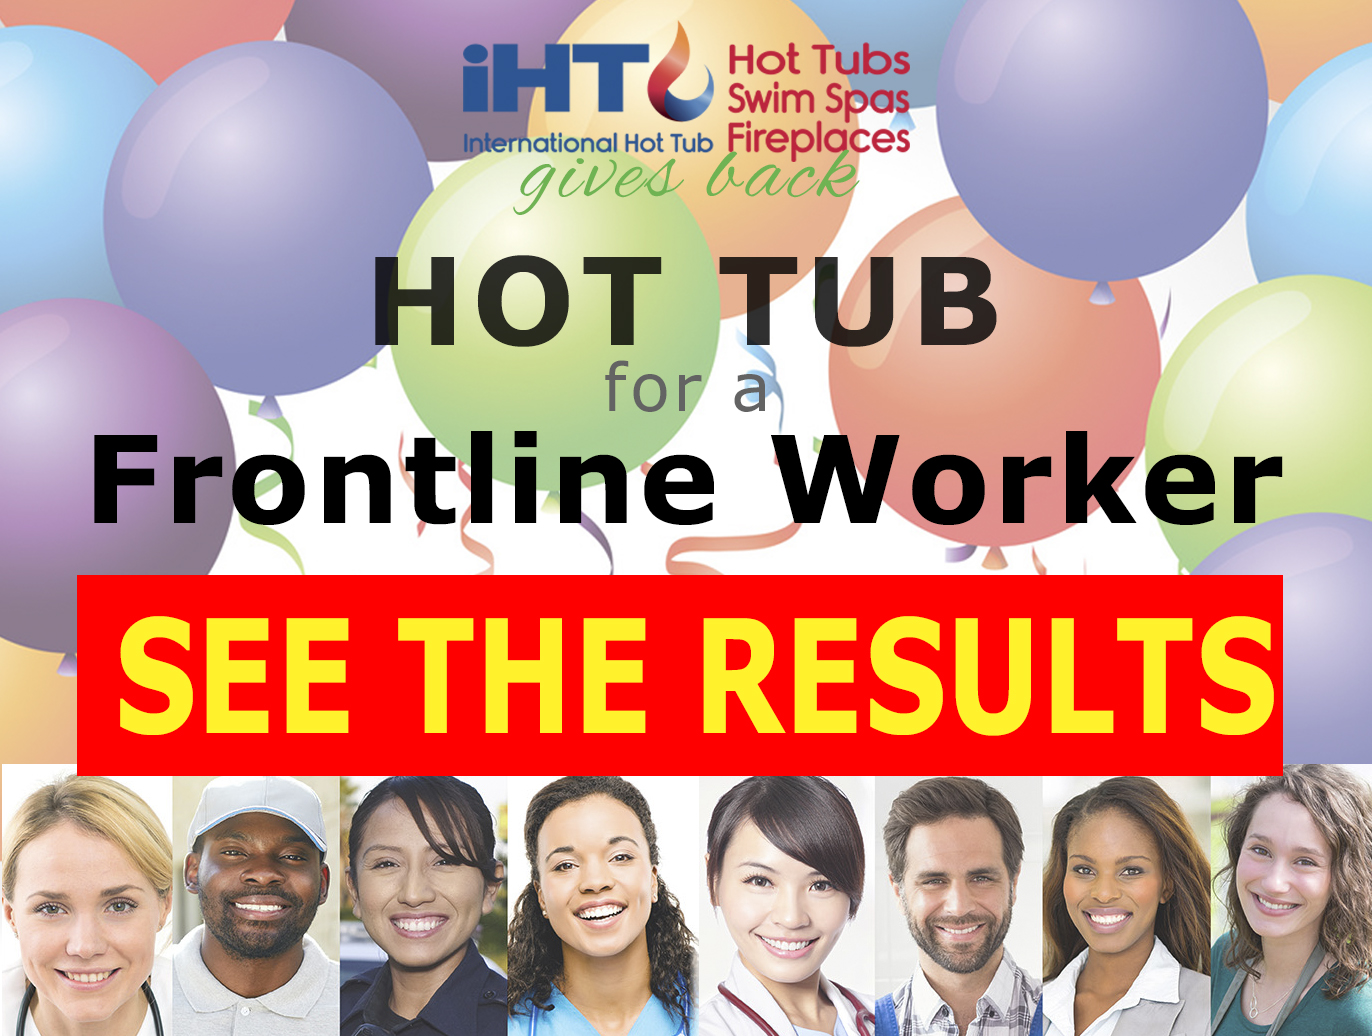 Hot tub giveaway to Frontline Workders results